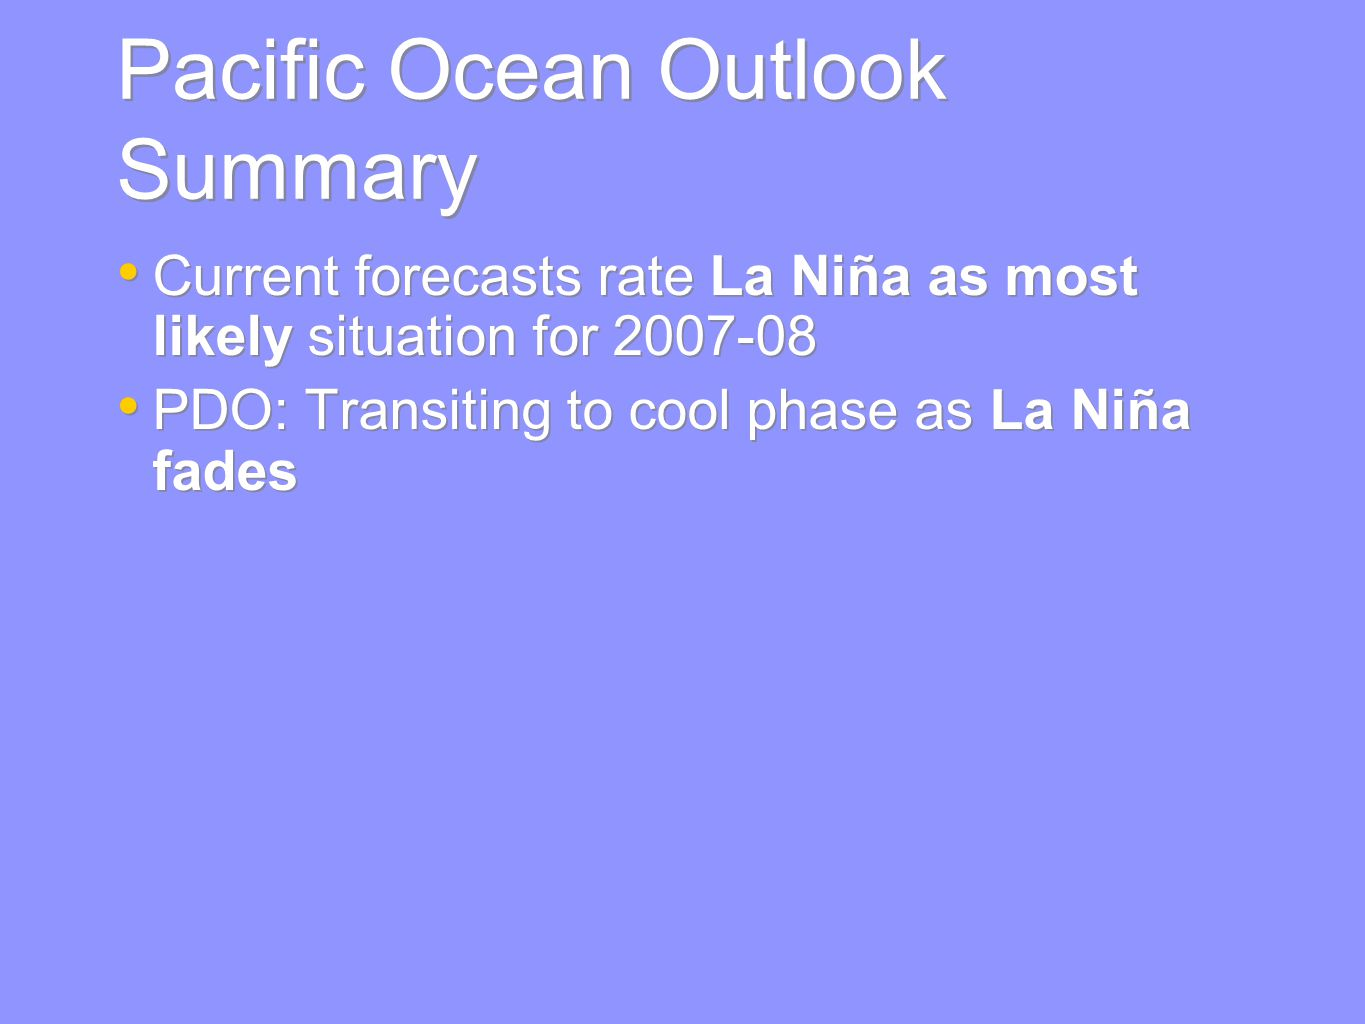 Pacific Ocean Outlook Summary Current forecasts rate La Niña as most likely situation for PDO: Transiting to cool phase as La Niña fades Current forecasts rate La Niña as most likely situation for PDO: Transiting to cool phase as La Niña fades